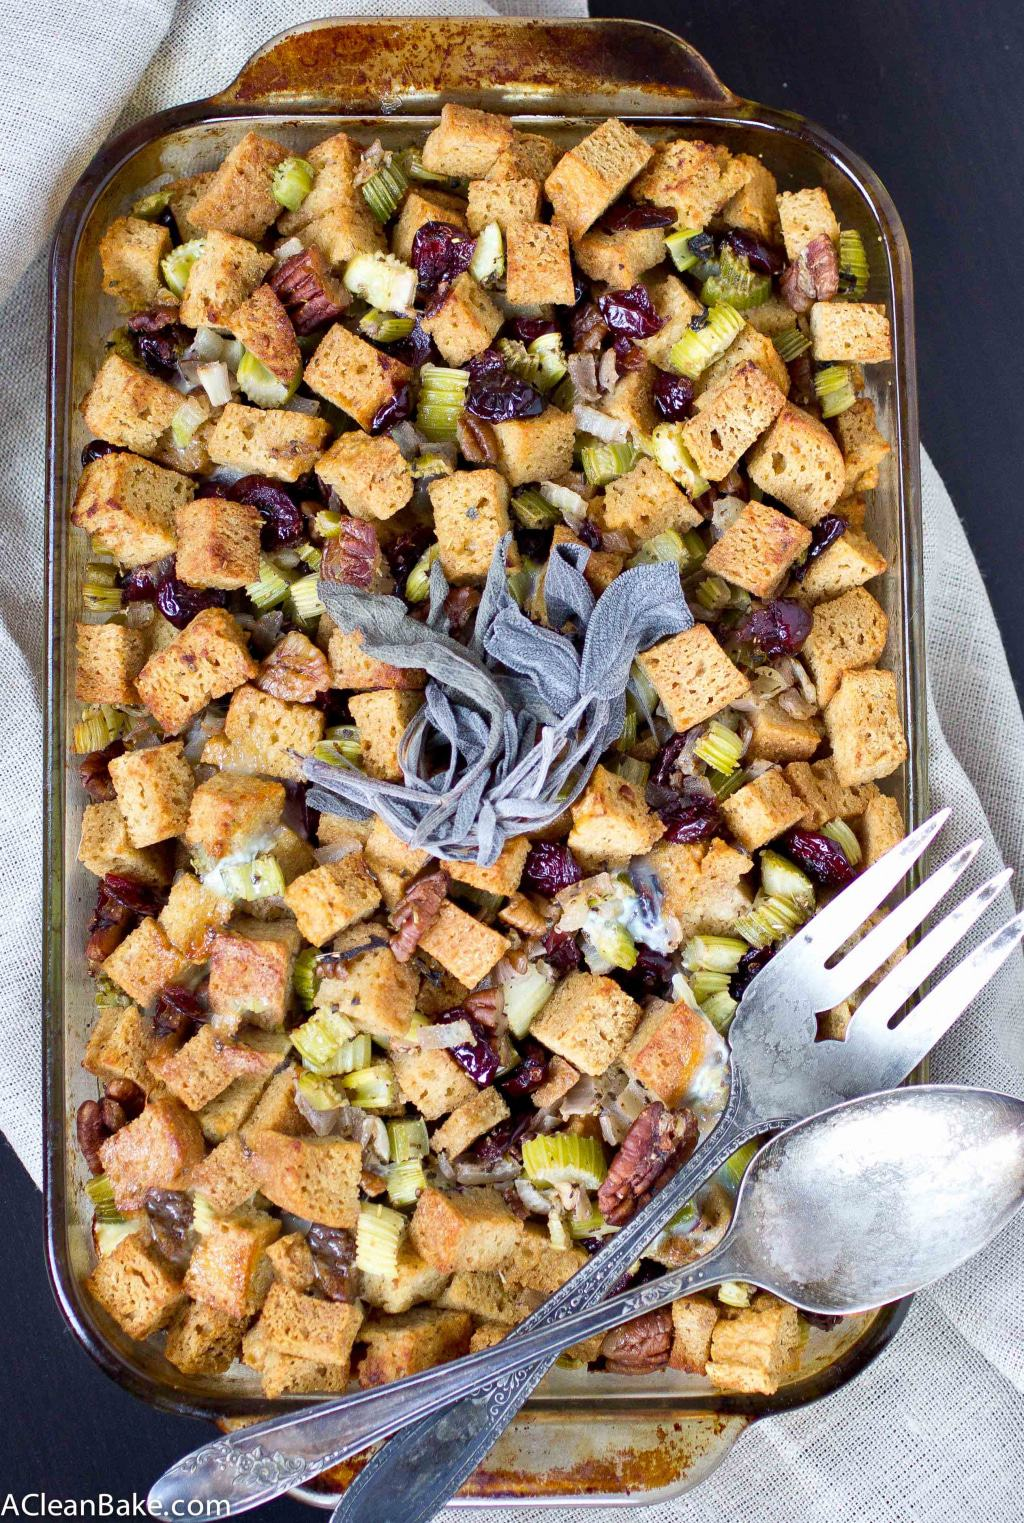 Grain Free Stuffing / Dressing (Gluten Free and Paleo)